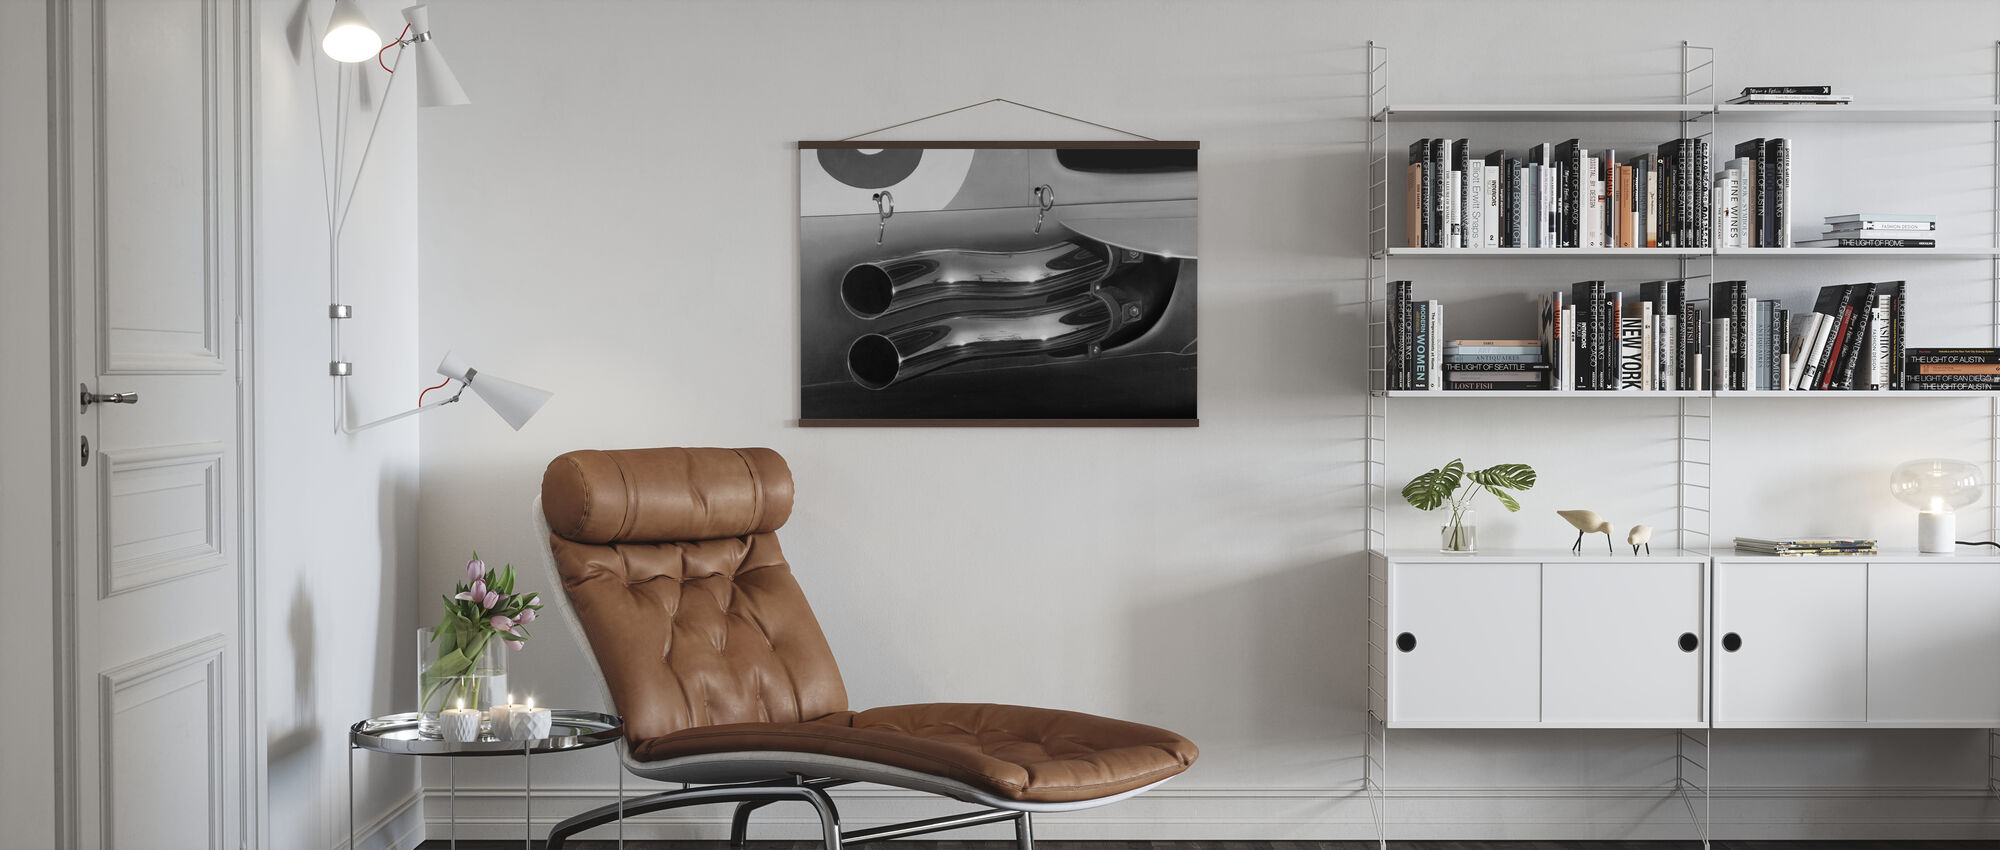 Exhaust Pipes BW - Poster - Living Room